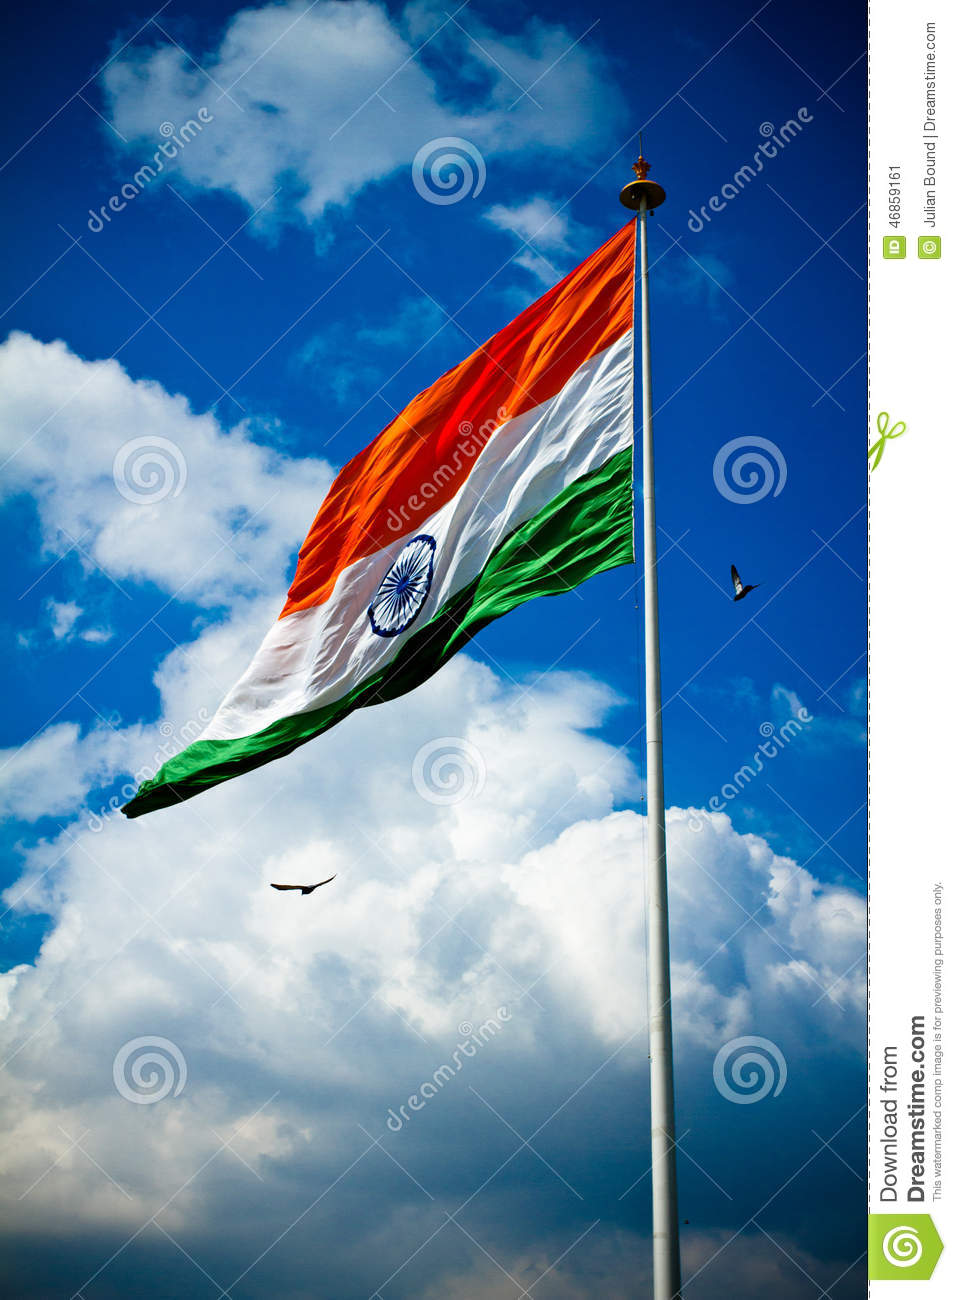 Tiranga Wallpaper Full Hd National Flag Of India With Blue Sky Birds And Clouds